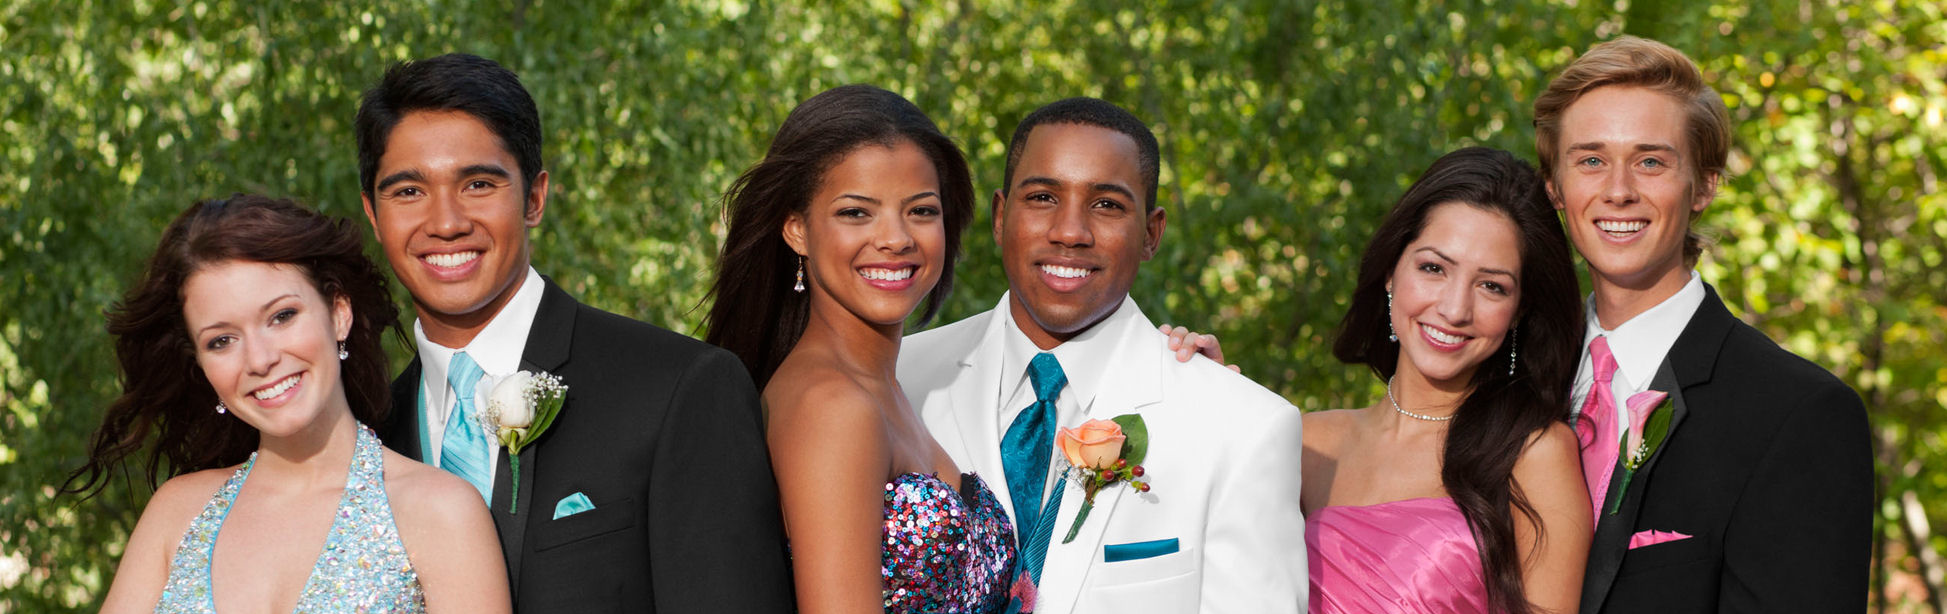 Junior Prom Limo Service and Party Bus Rentals